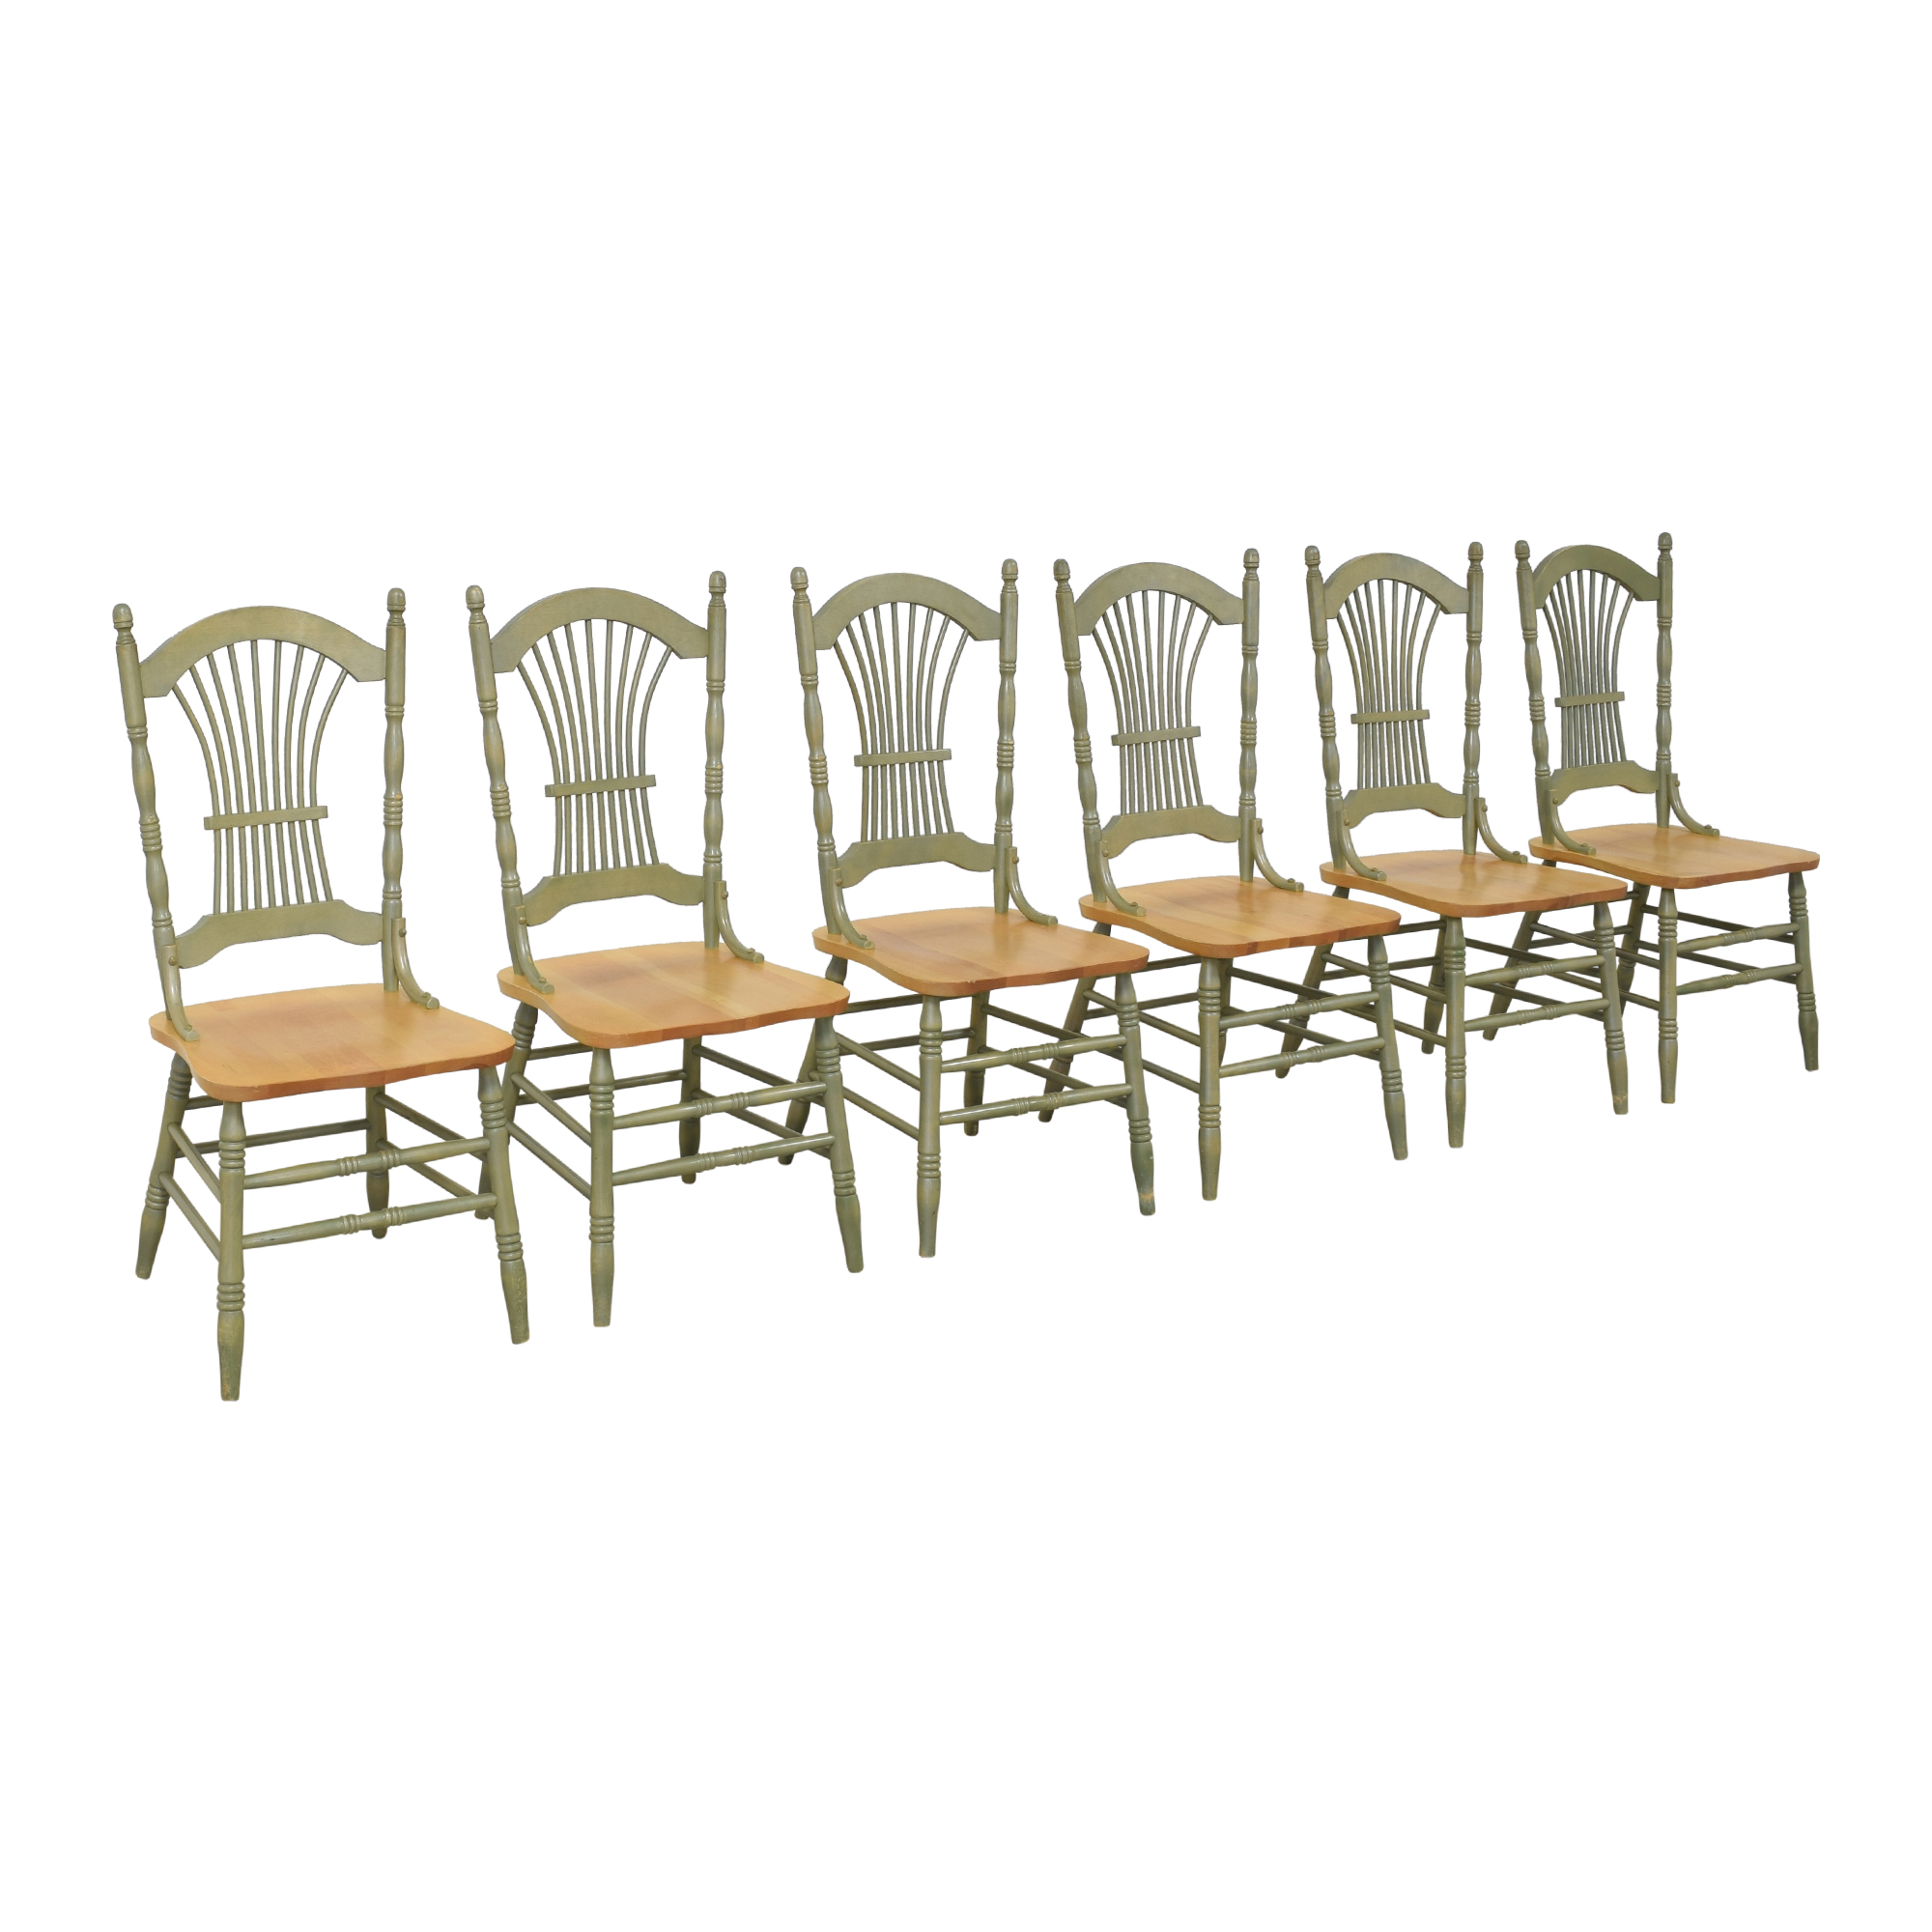 Canadel Canadel Sheaf Back Dining Chairs on sale